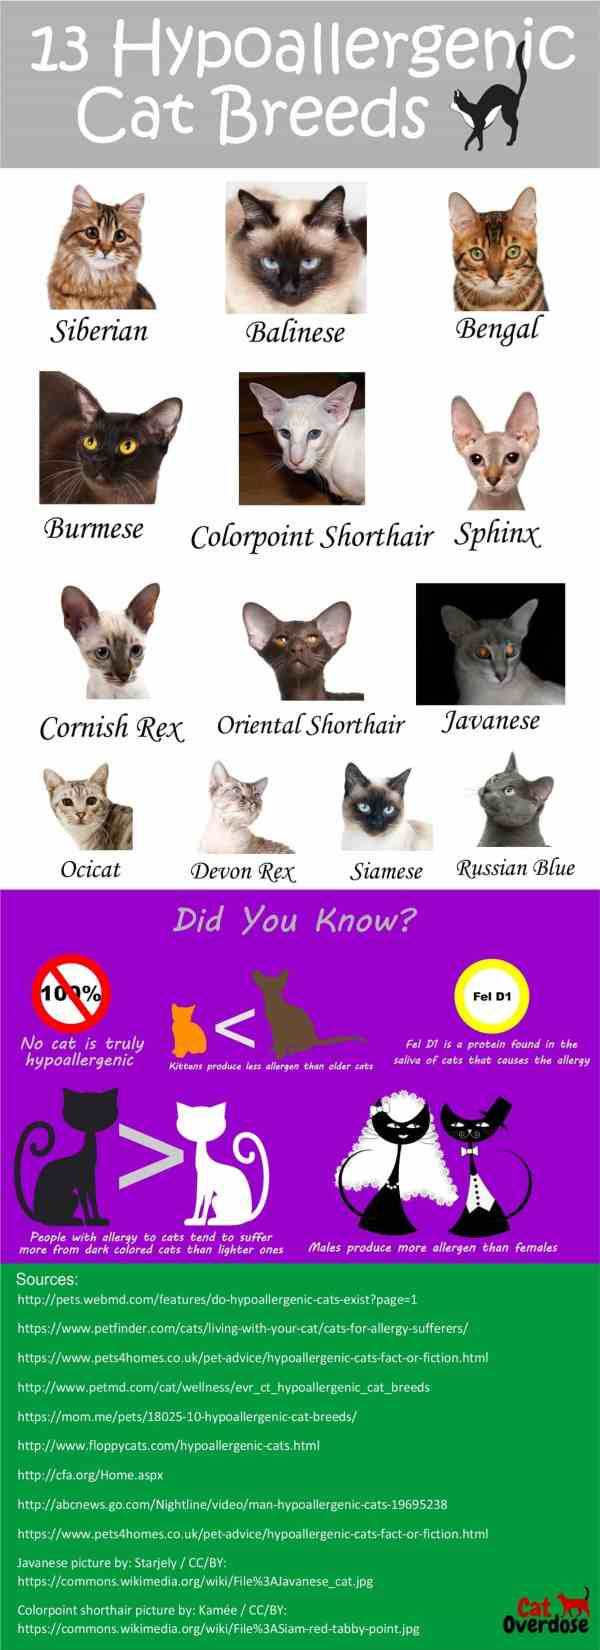 hypoallergenic cat breeds infographic